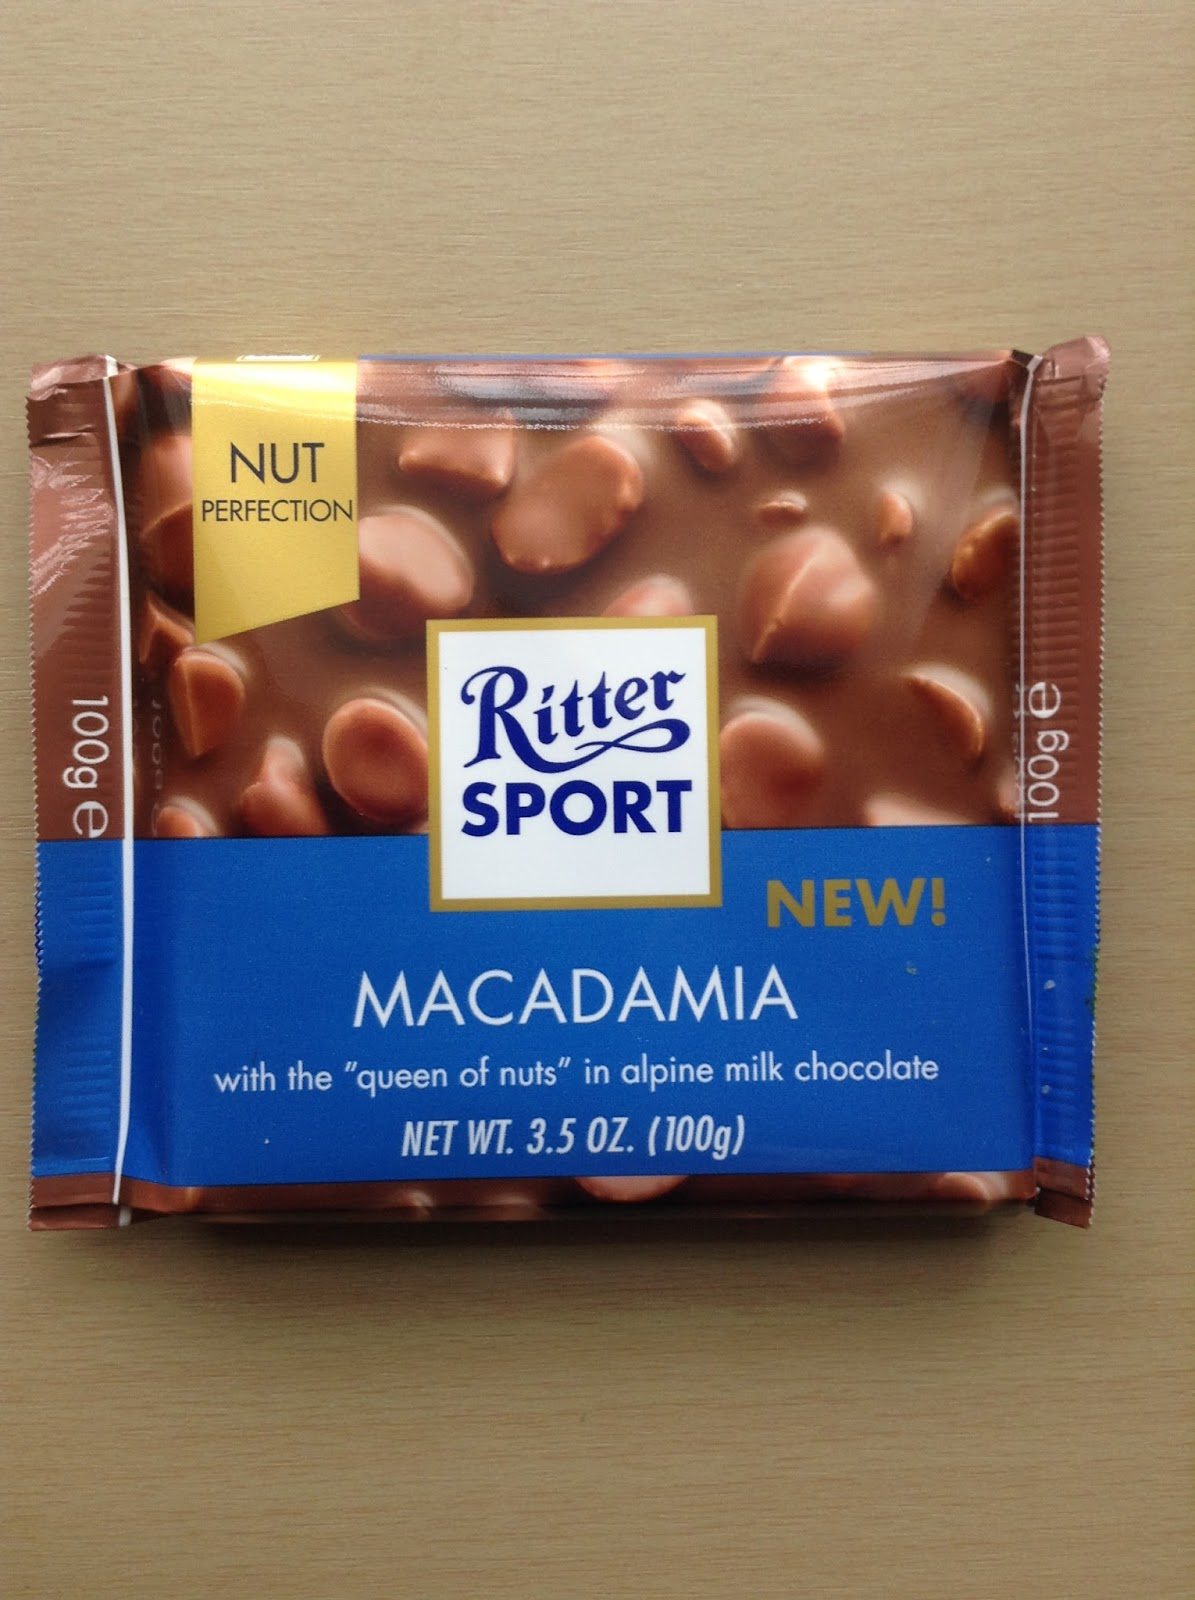 Kev's Snack Reviews: Ritter Sport Macadamia Nut Perfection